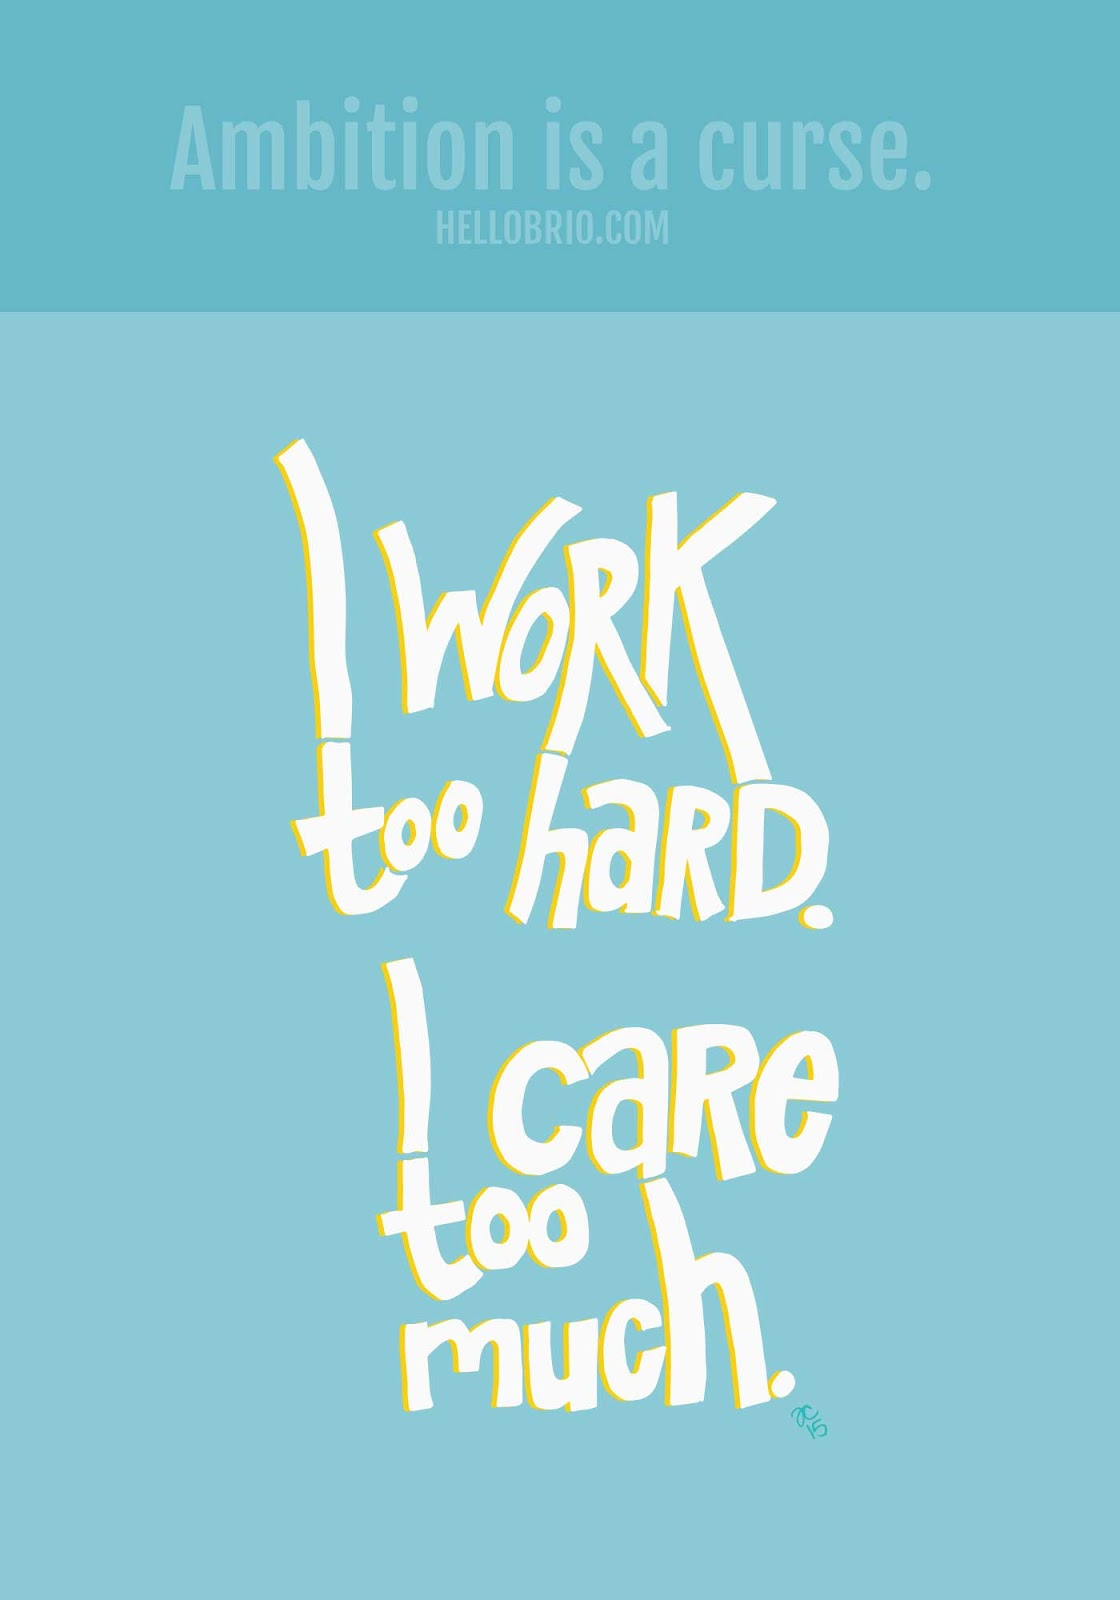 You work too hard. You care too much. Quote from The Office